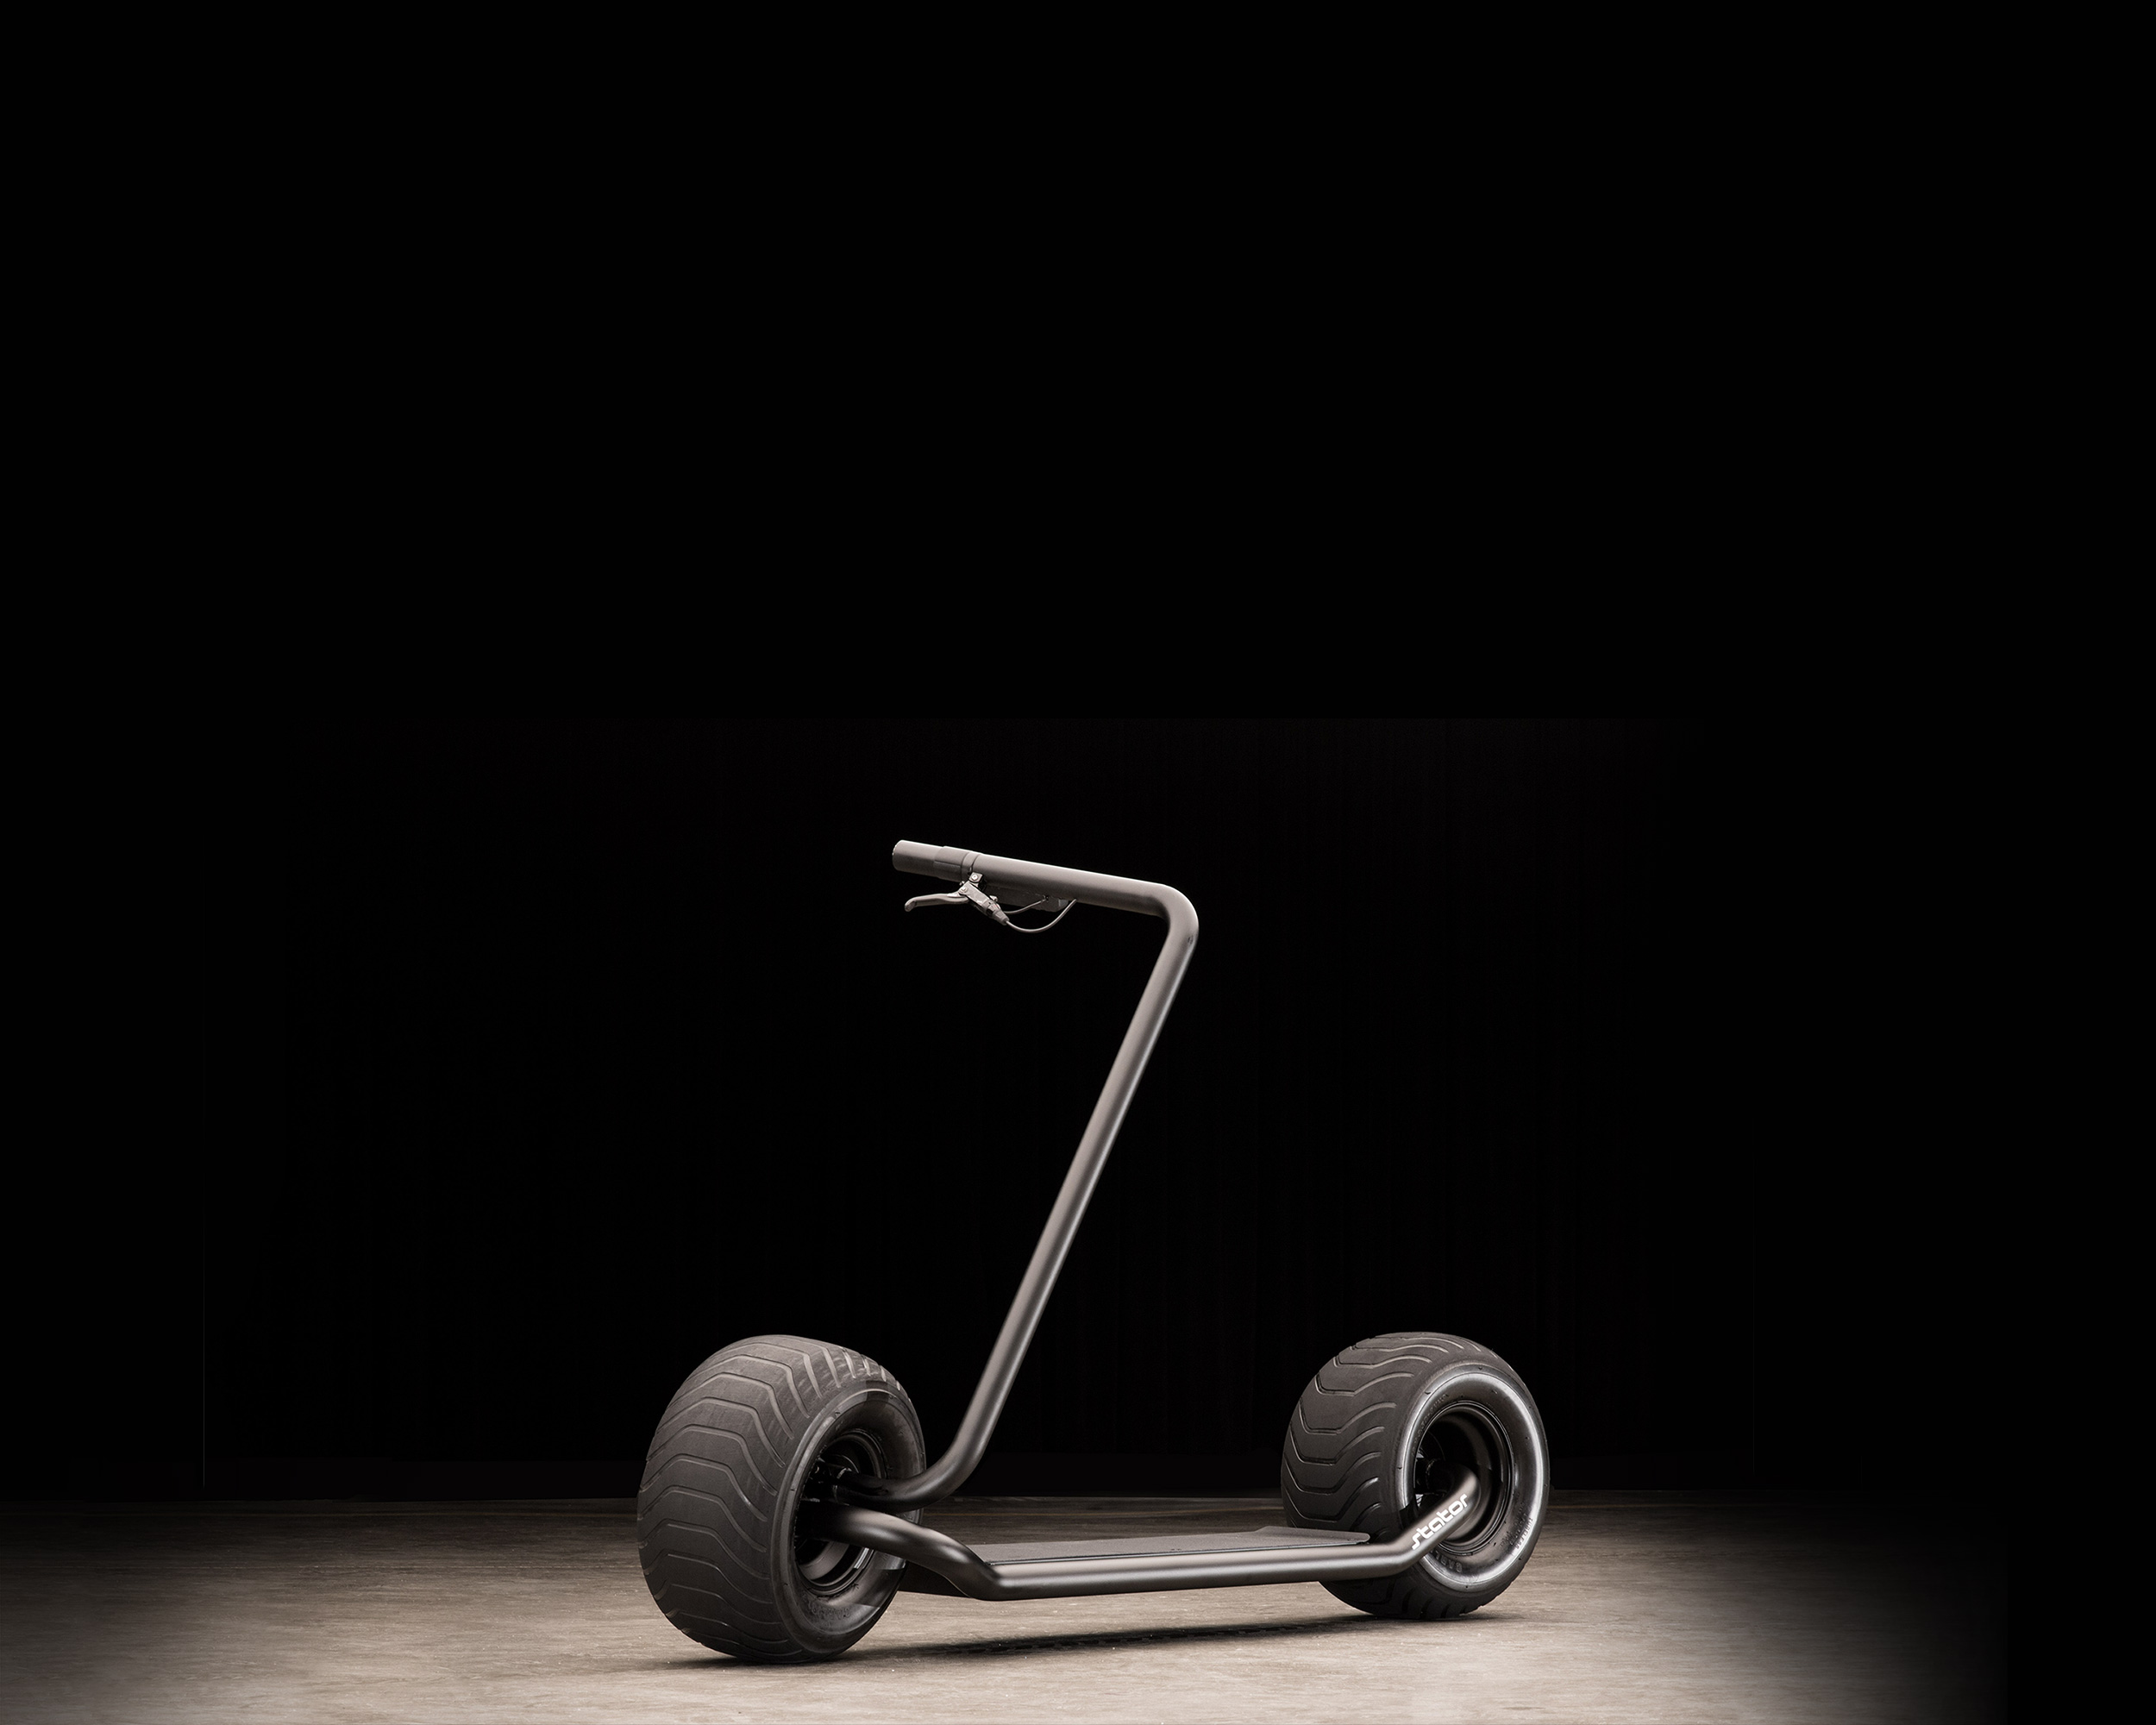 Stator Electric Standing Scooter Evnerds